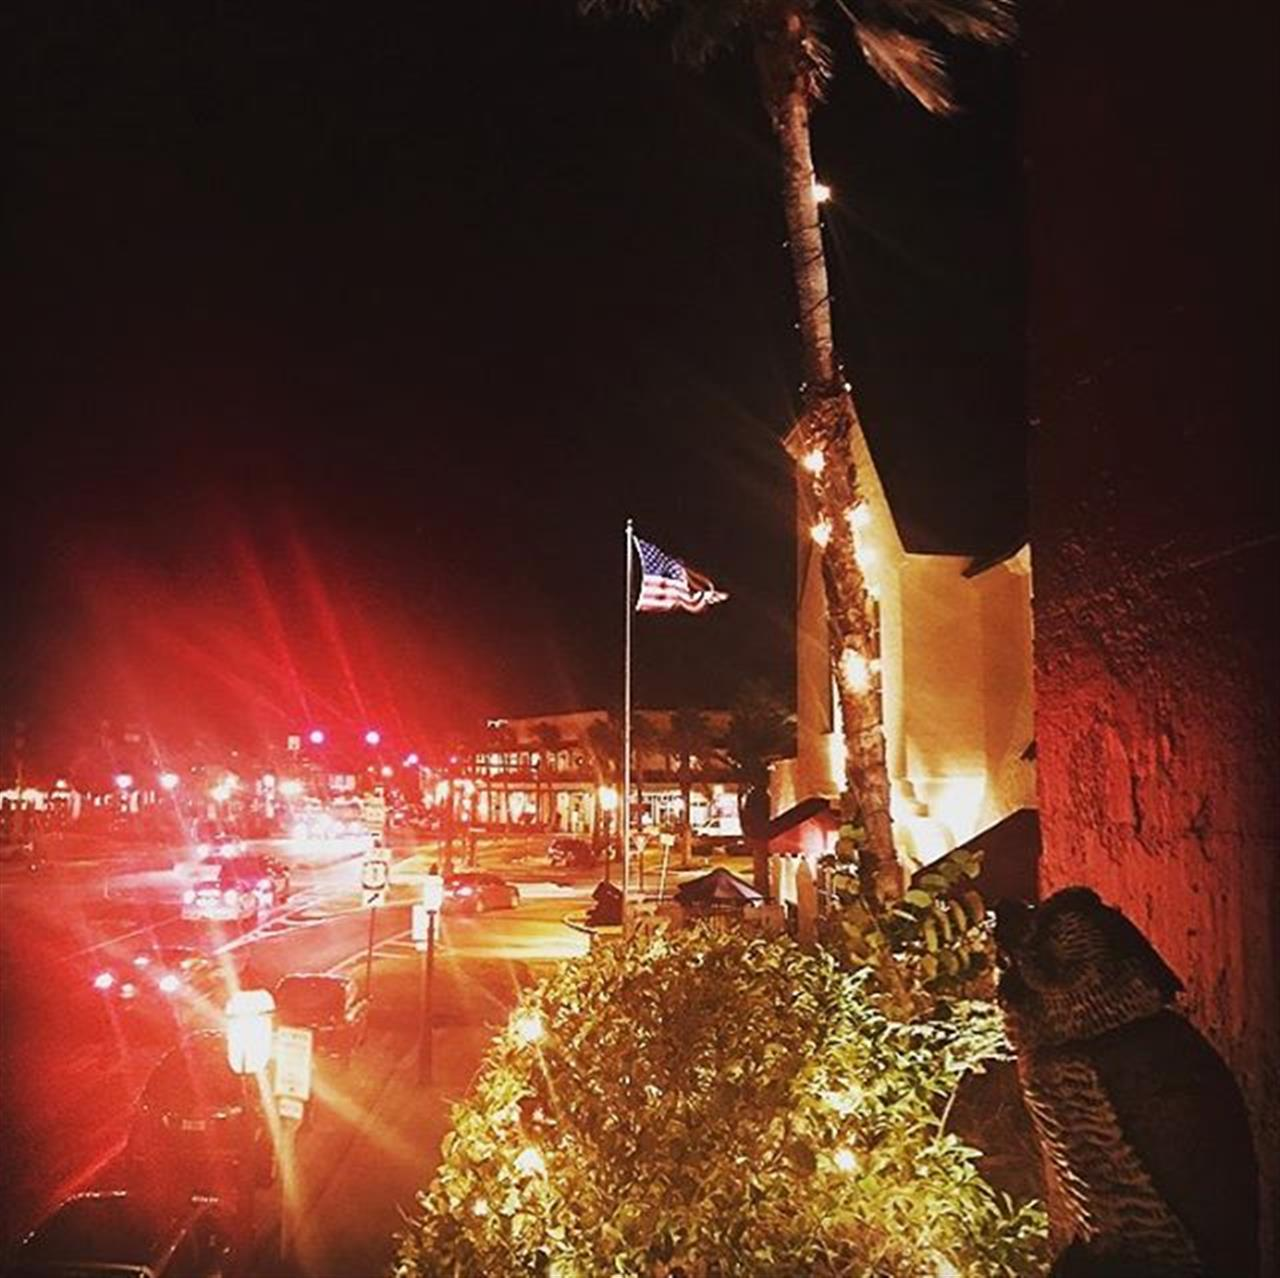 Sunday nights...a bird's (or is it an owl's) eye view of the Bridge of Lions ? from Harry's @ Old City ? St. Augustine, FL #oldcitylife #oldcitylifemagazine #streetphotography #neverstopexploring #restaurant #foodie #igersstaugustine #staugustine #nightlife #light #history #usa #realtors #red #nightout #leadingrelocal